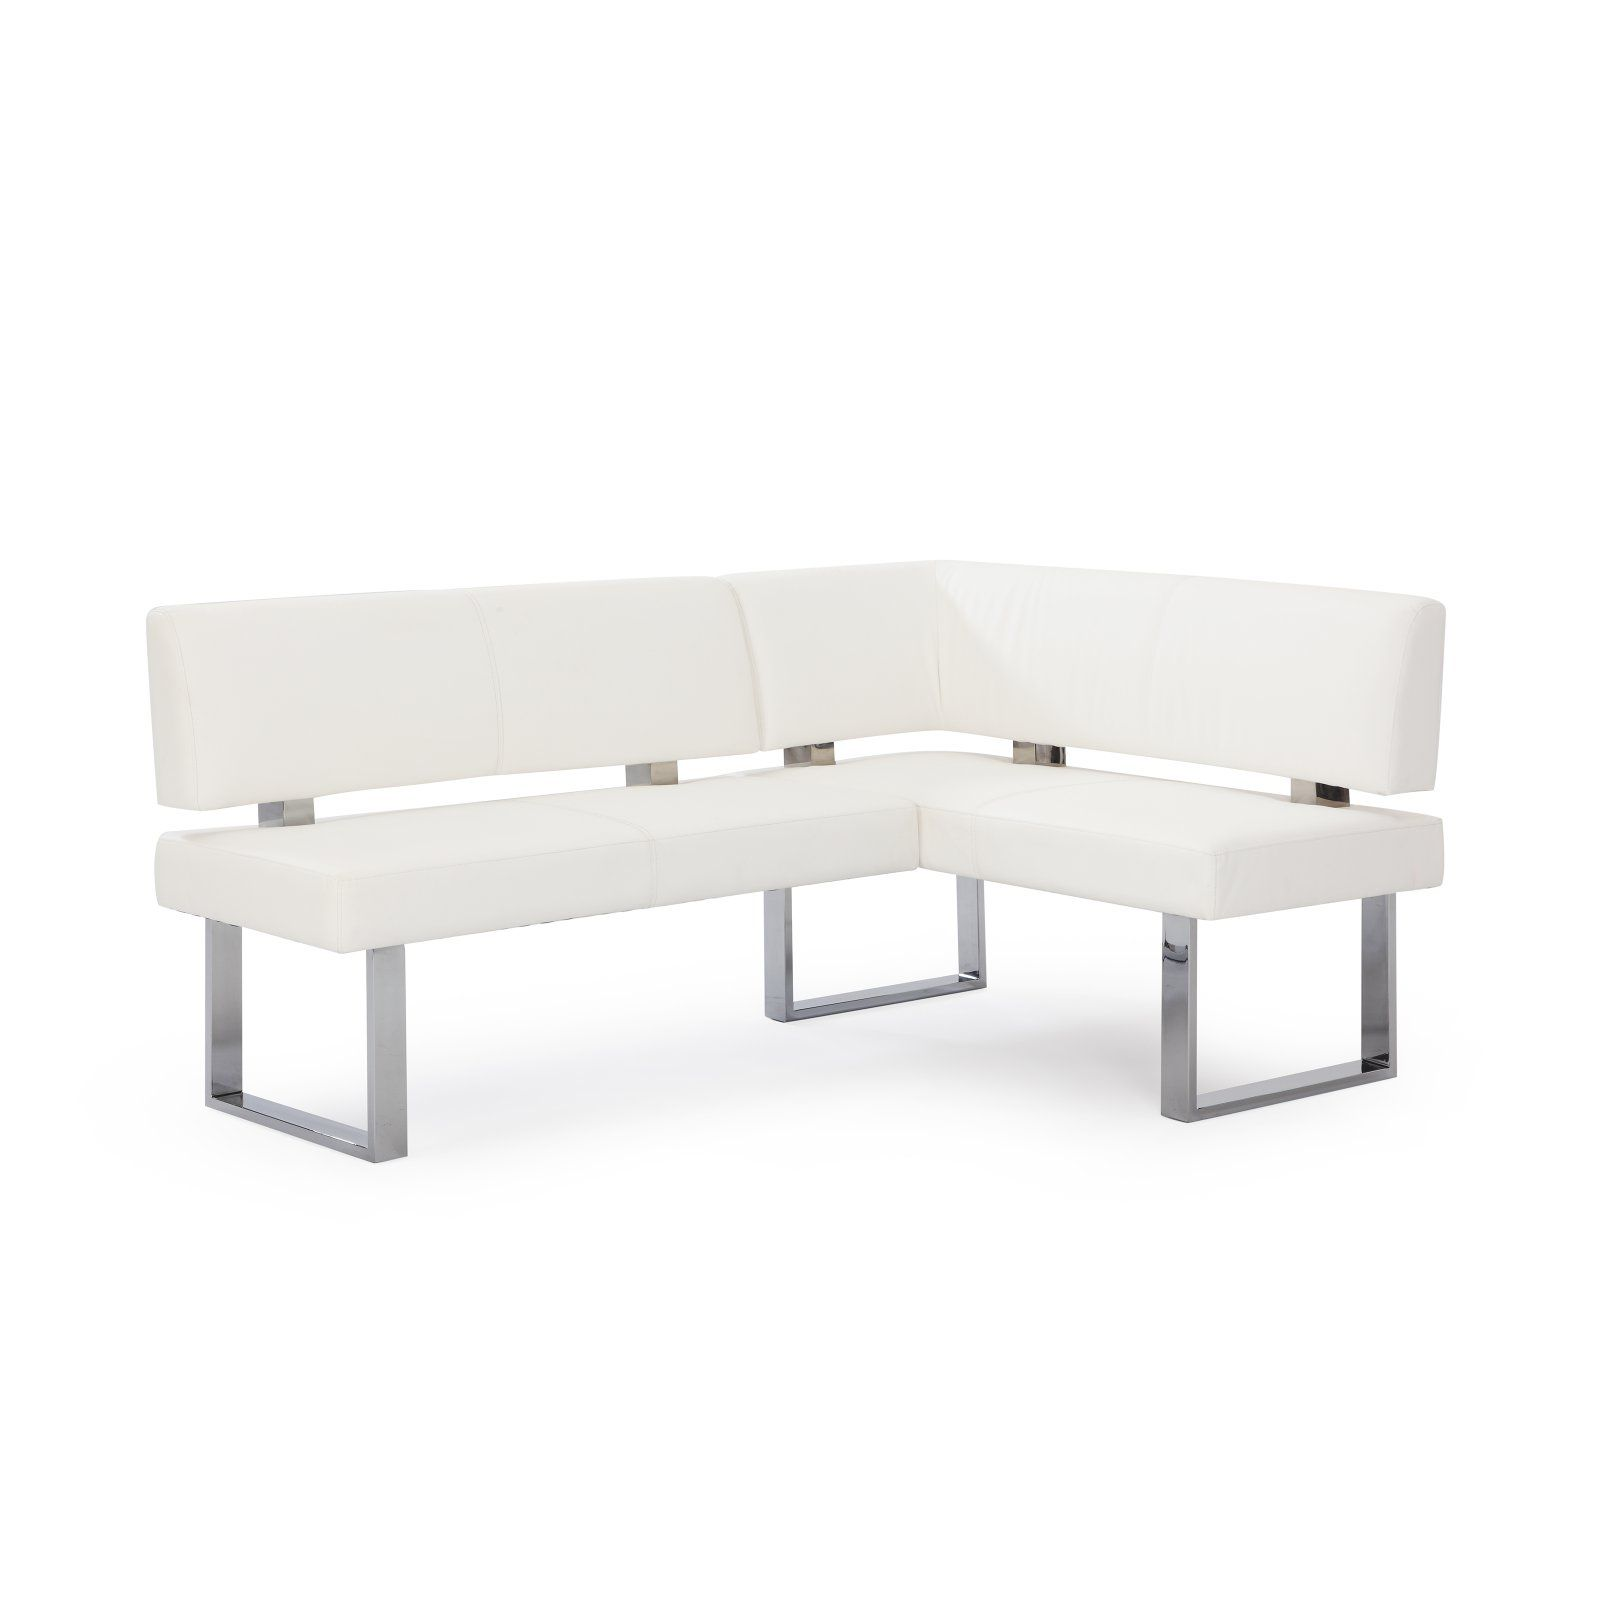 Chintaly Linden L Shaped Dining Bench Dining Bench Bench